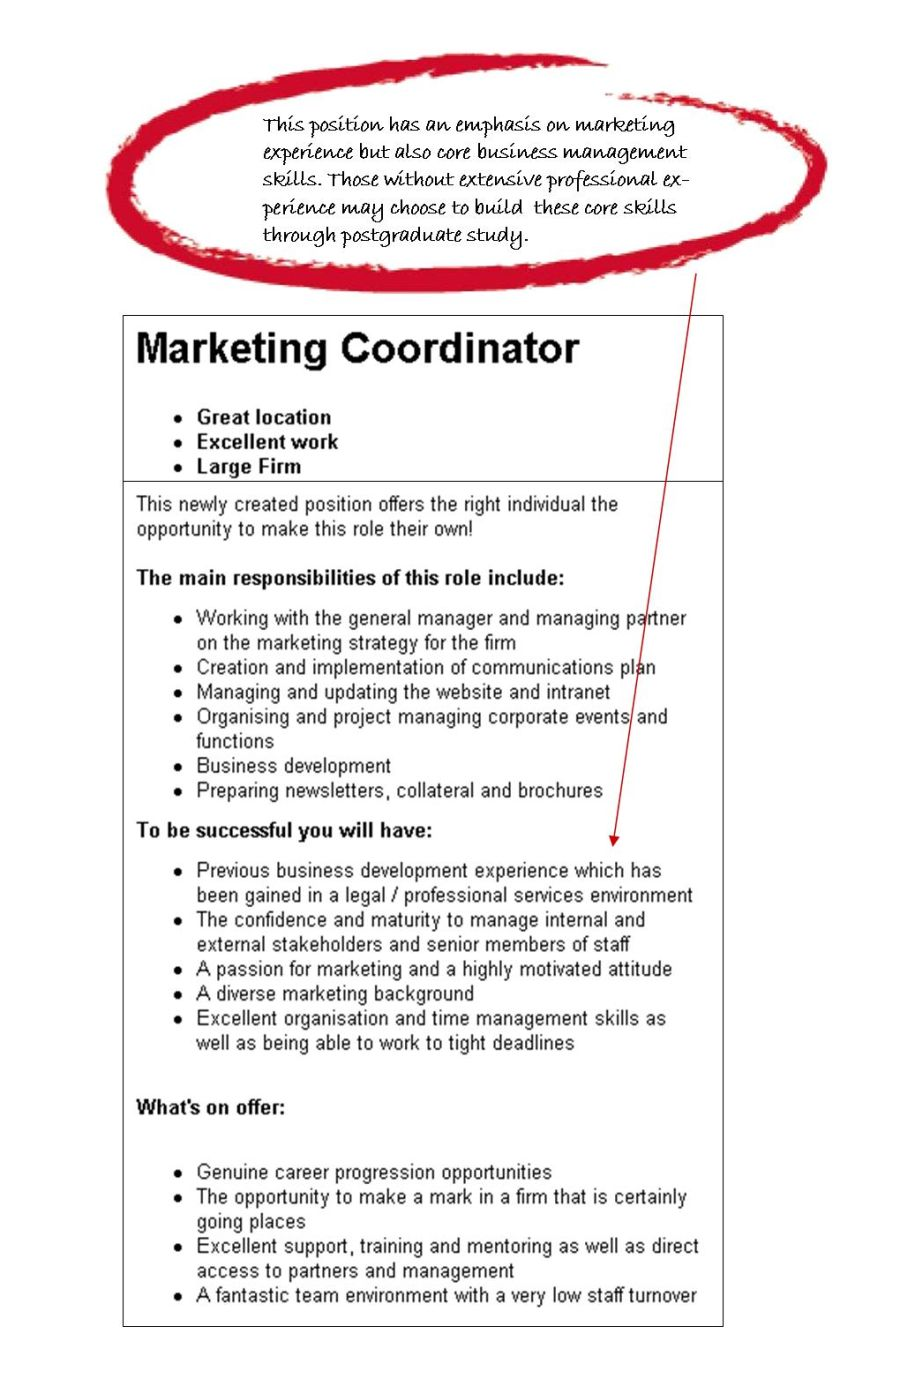 objective resume writing examples business management event planner oncology nurse Resume Business Management Objective Resume